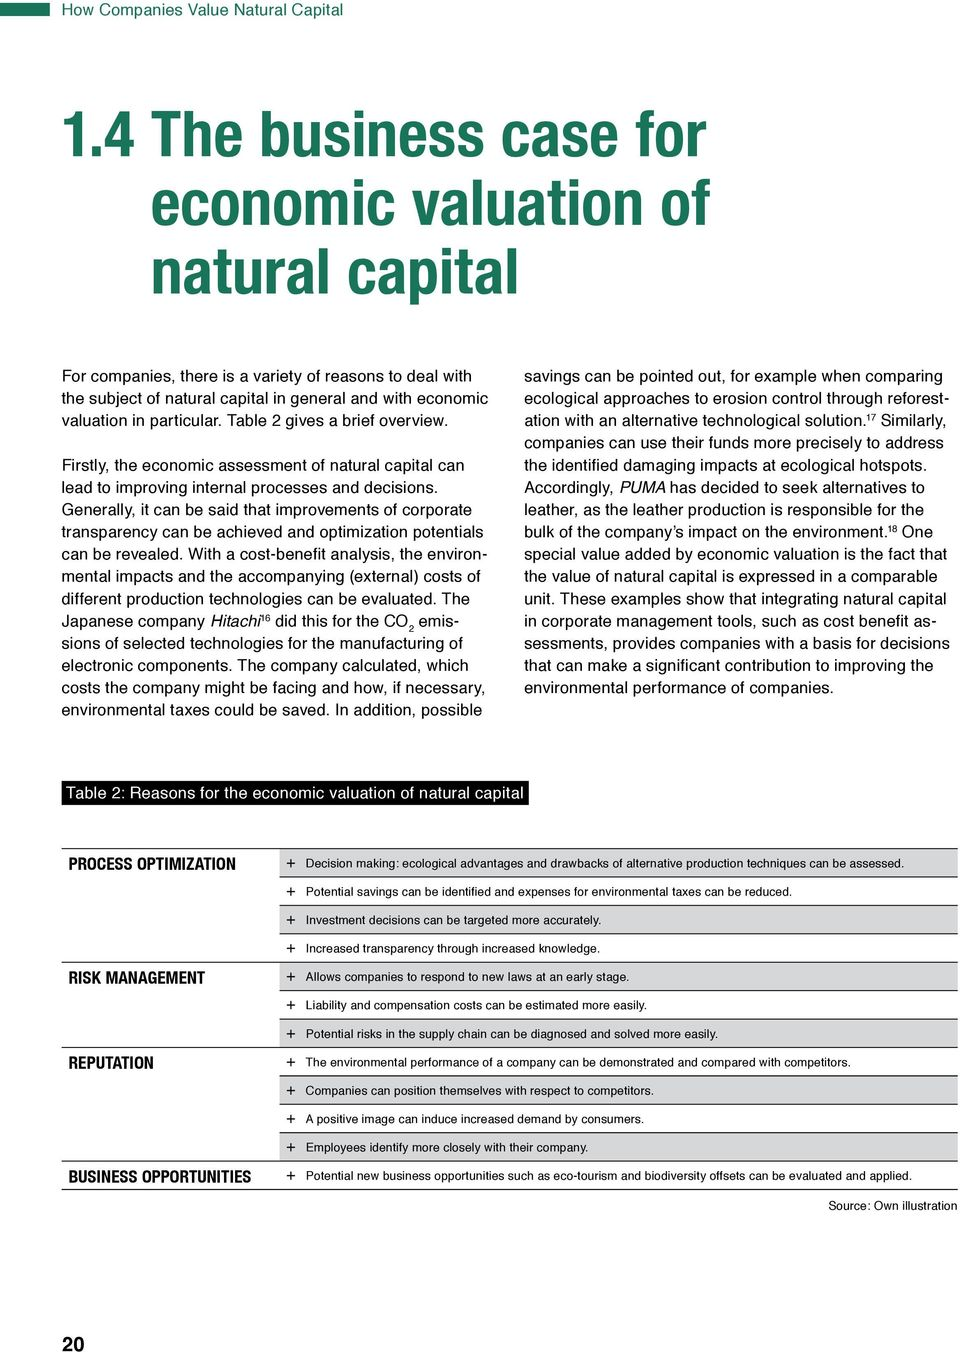 particular. Table 2 gives a brief overview. Firstly, the economic assessment of natural capital can lead to improving internal processes and decisions.